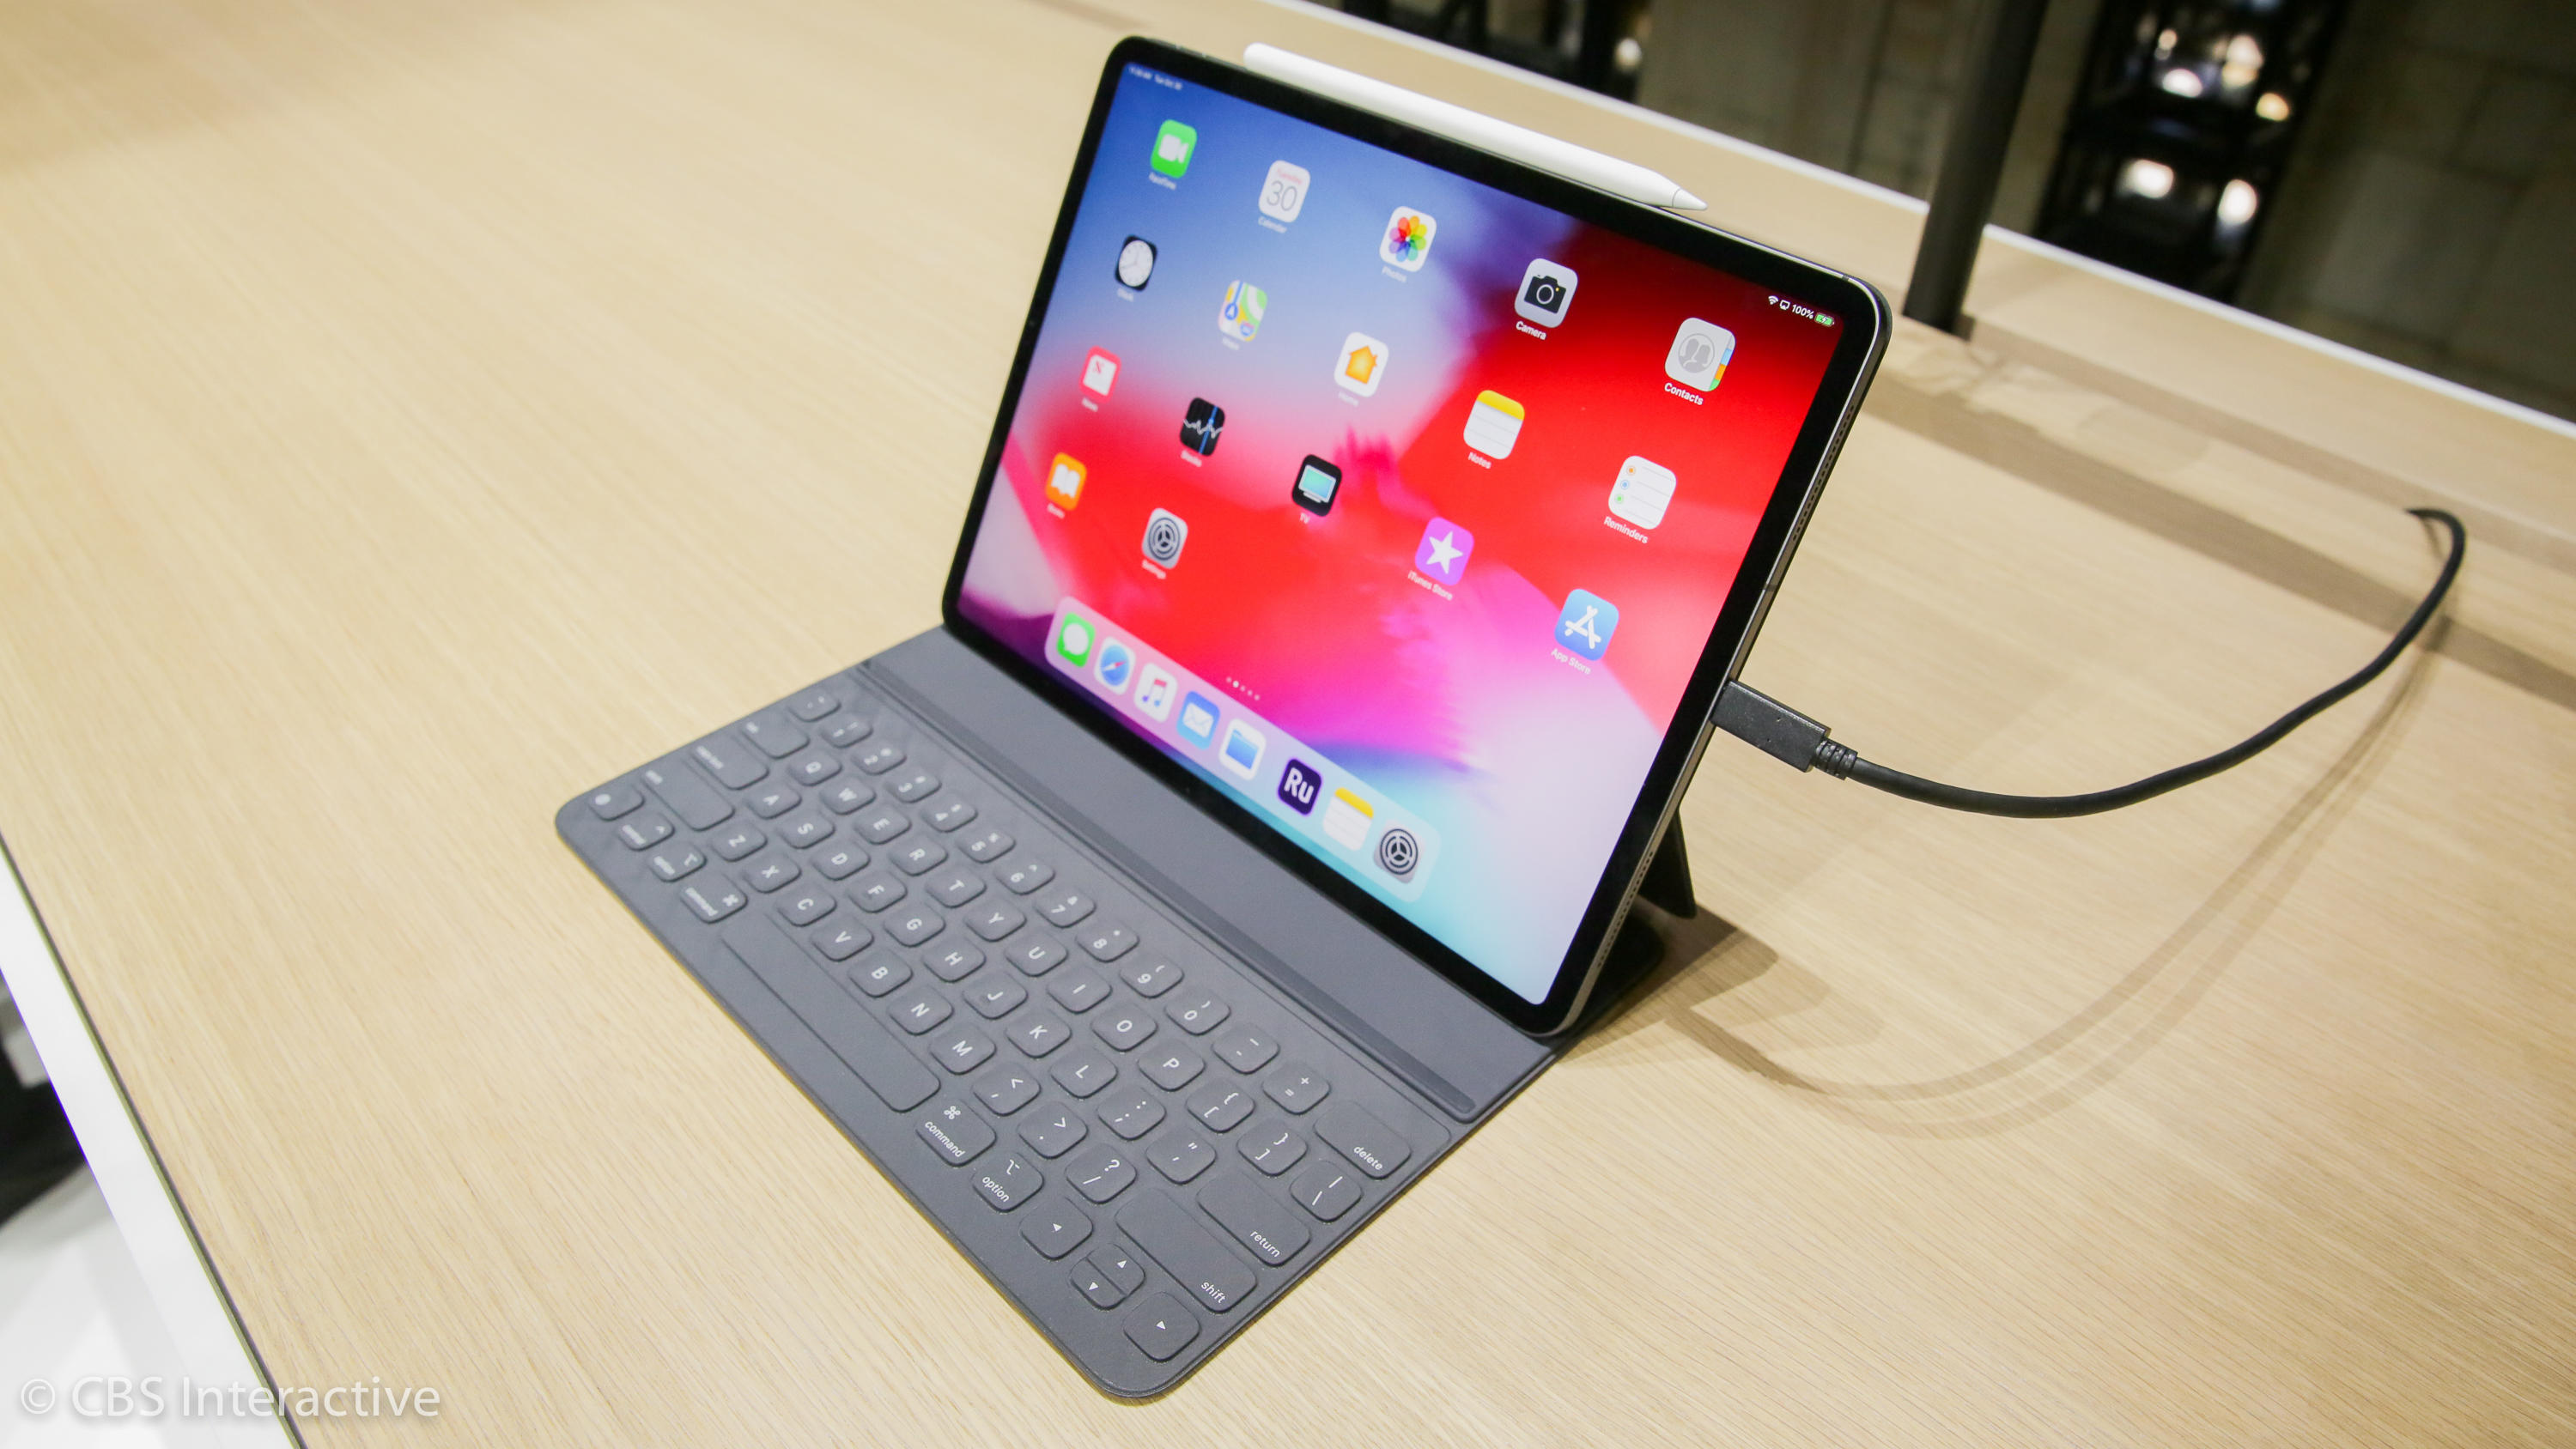 The 2018 iPad Pro models use a USB-C port to charge and connect to other devices.